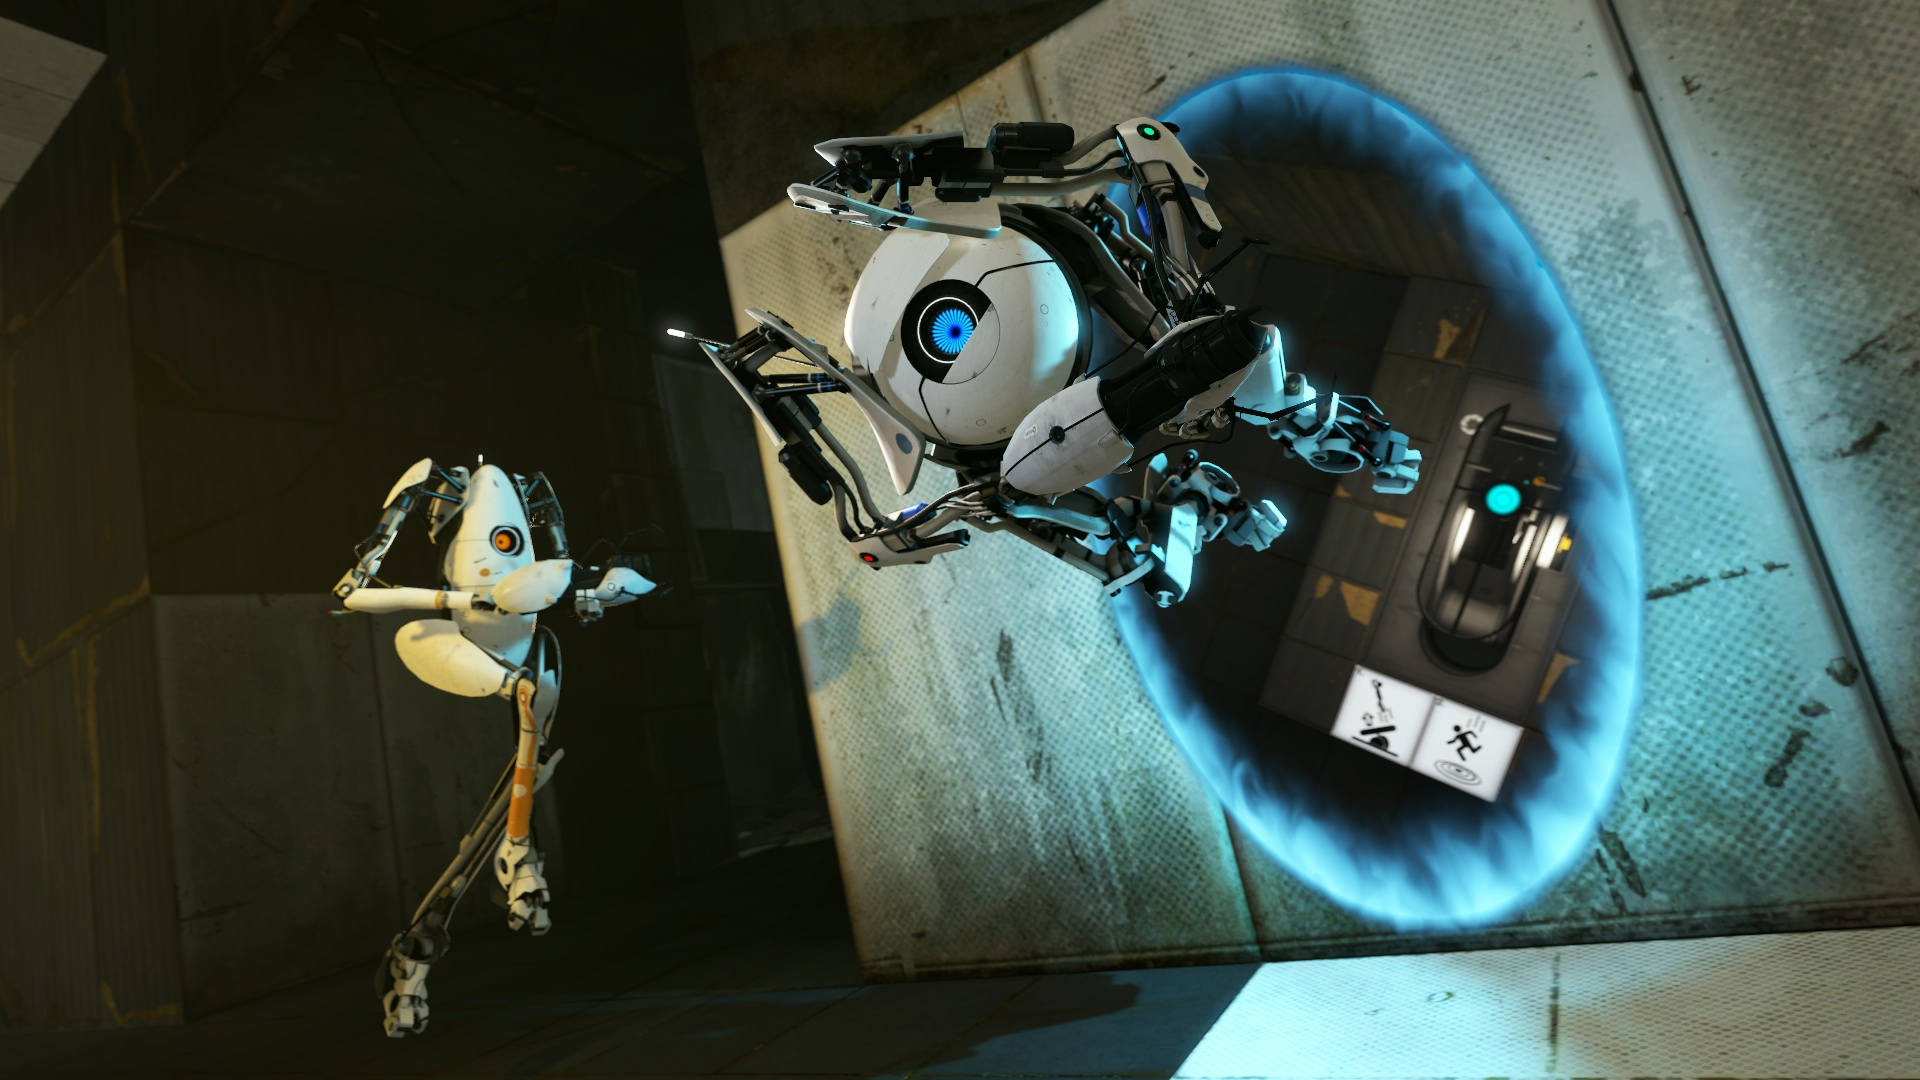 Portal 2: A robot being shot out of a portal while another robot sits there and watches